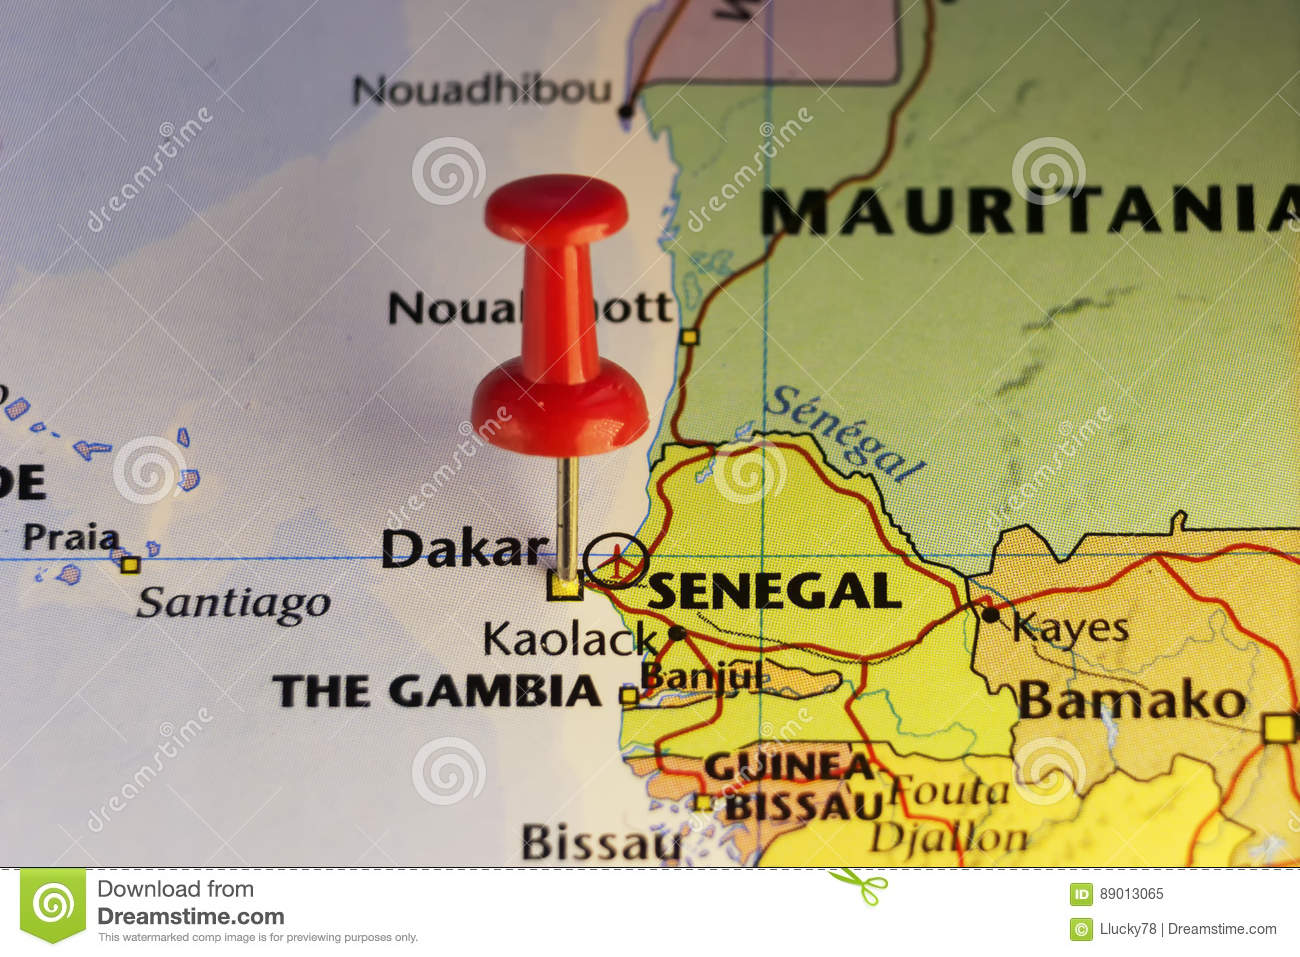 on dakar senegal on world map